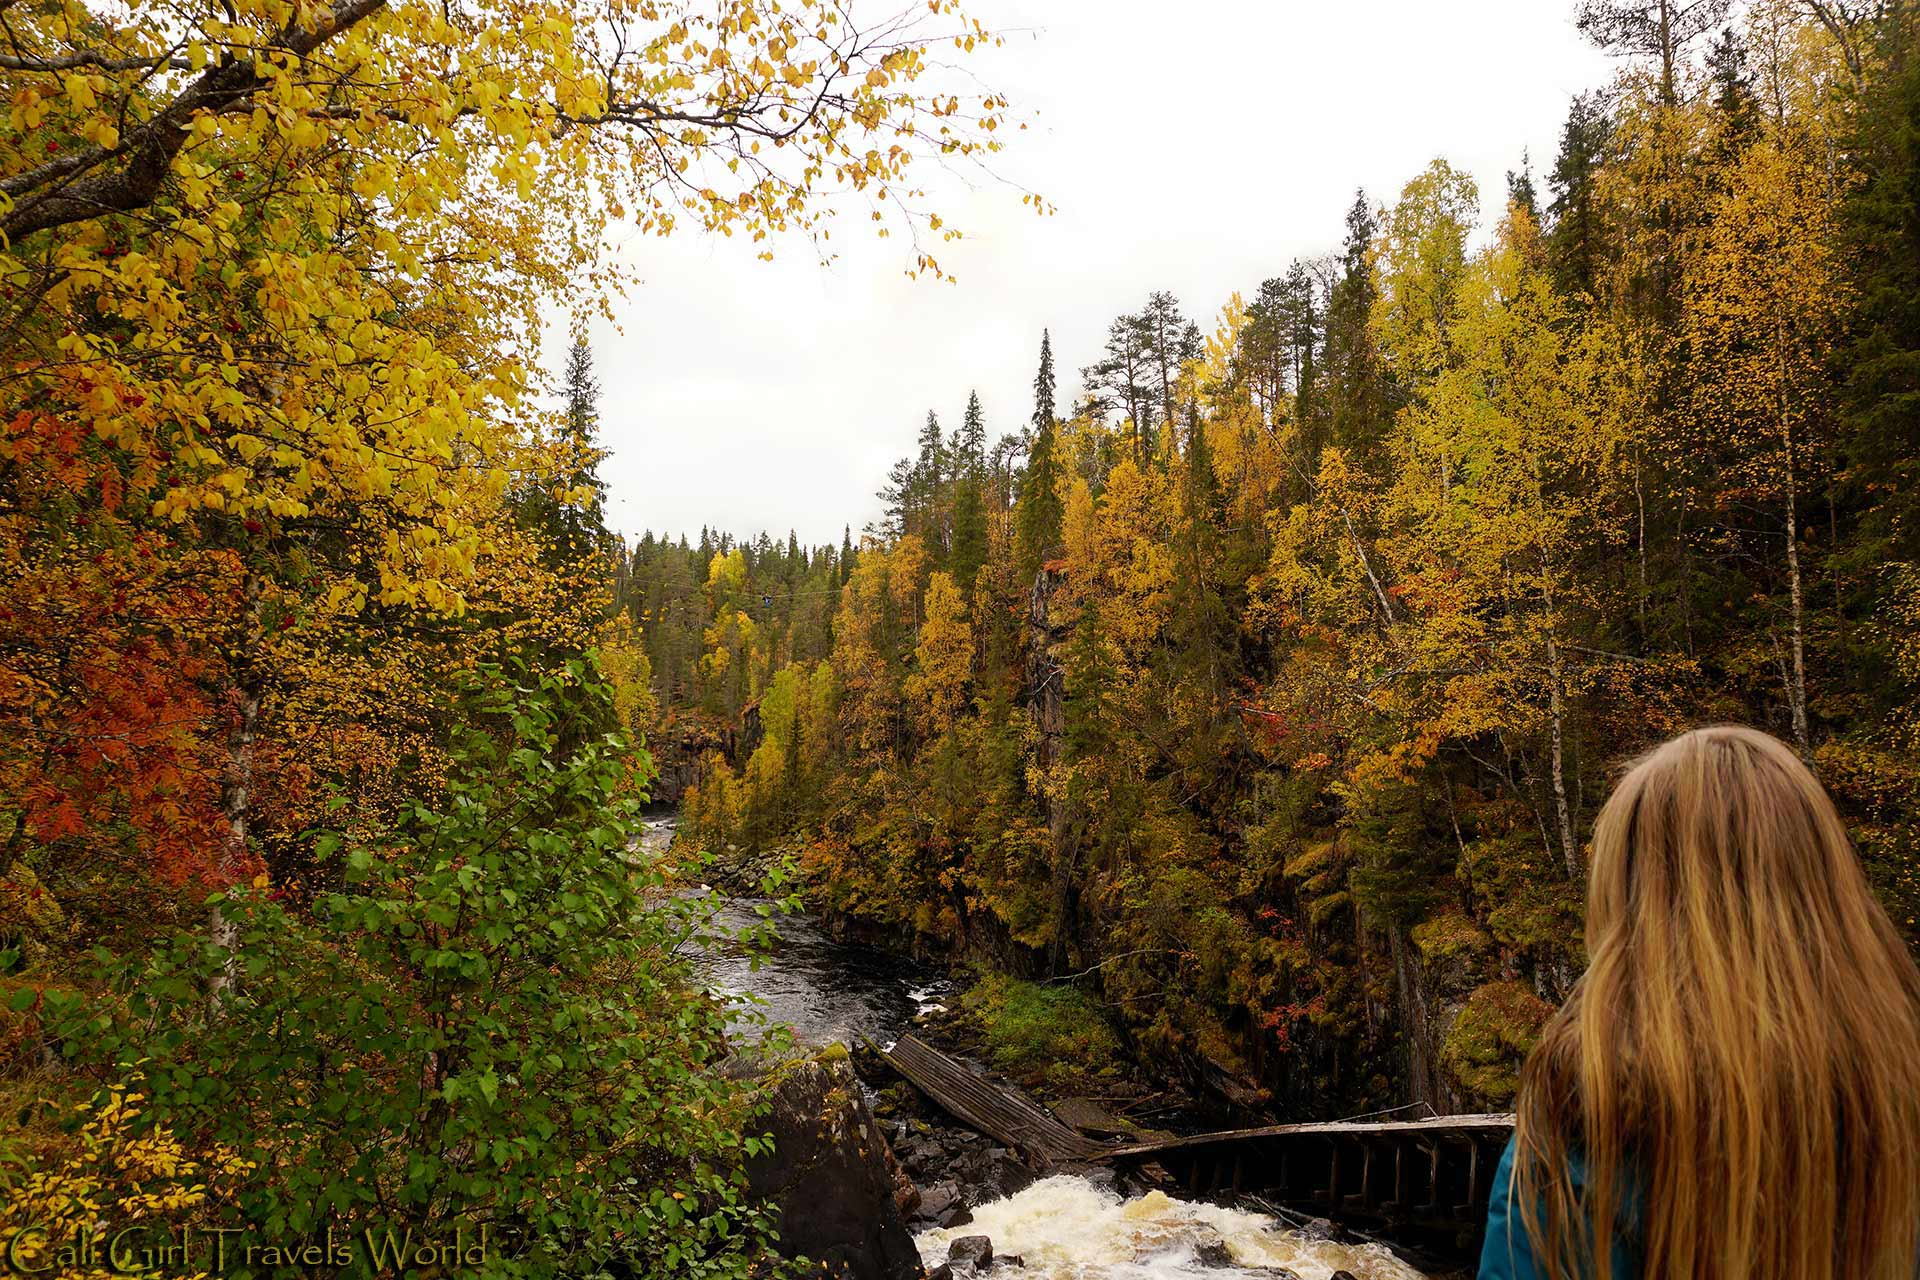 Travel blogger visiting Auttikongas river gorge near Rovaniemi, Finland in Lapland among ruska or autumn colors.